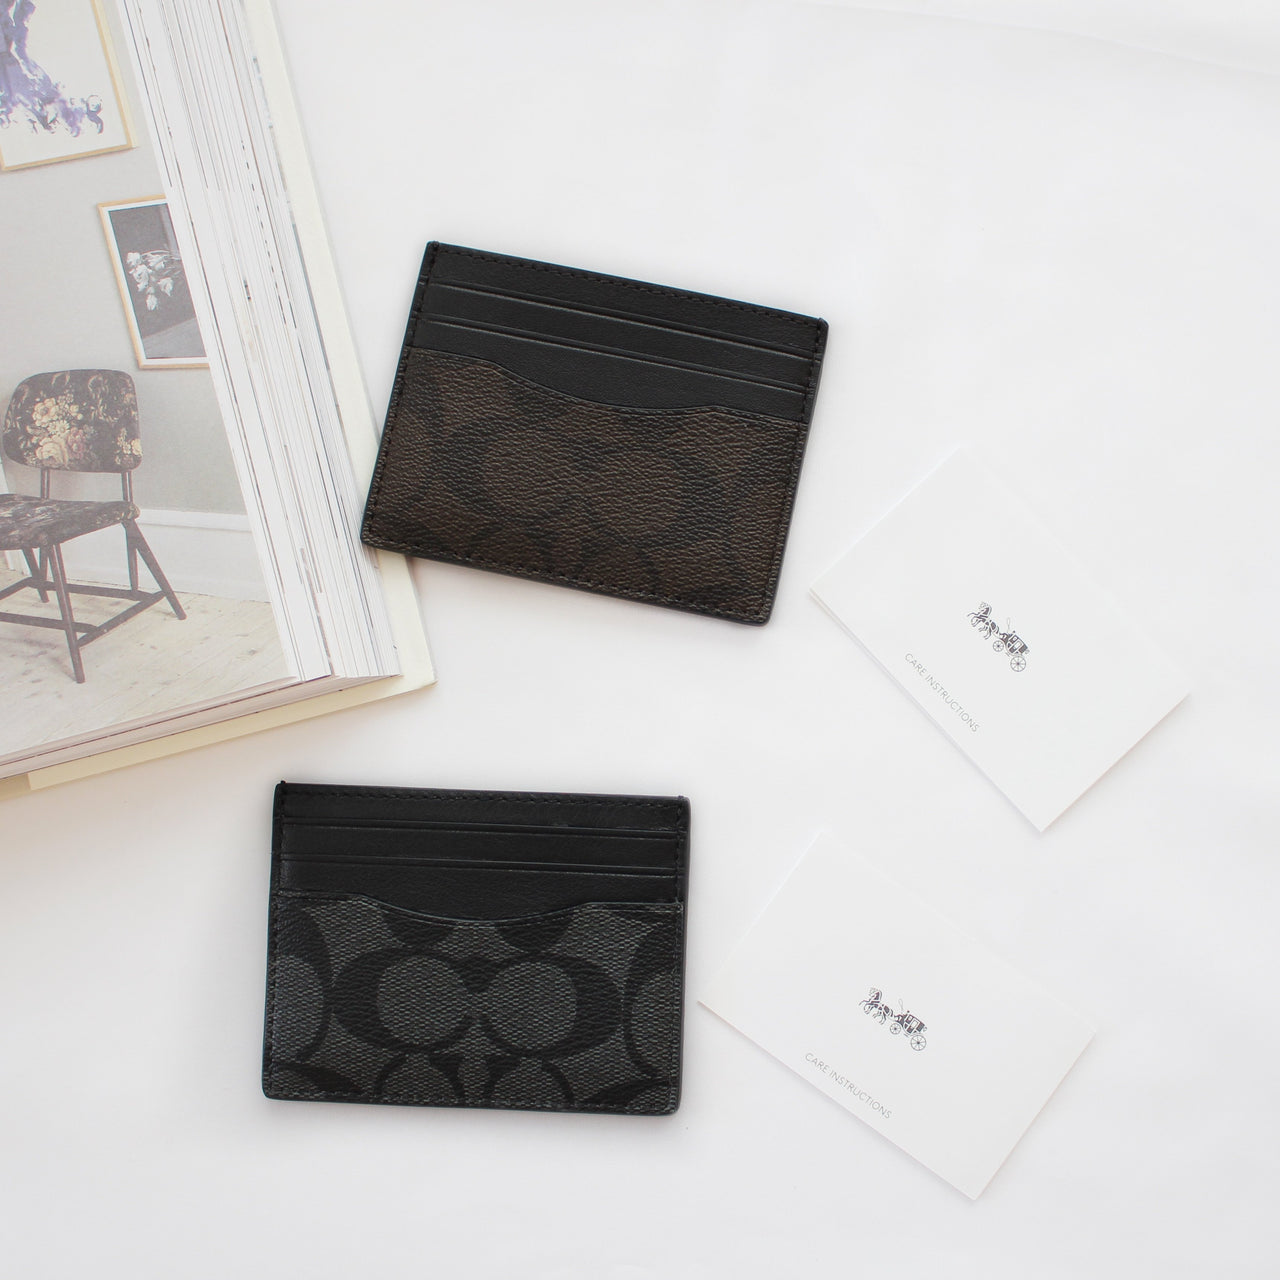 COACH SIGNATURE SLIM CARD CASE - LovelyMadness Clothing Online Fashion Malaysia